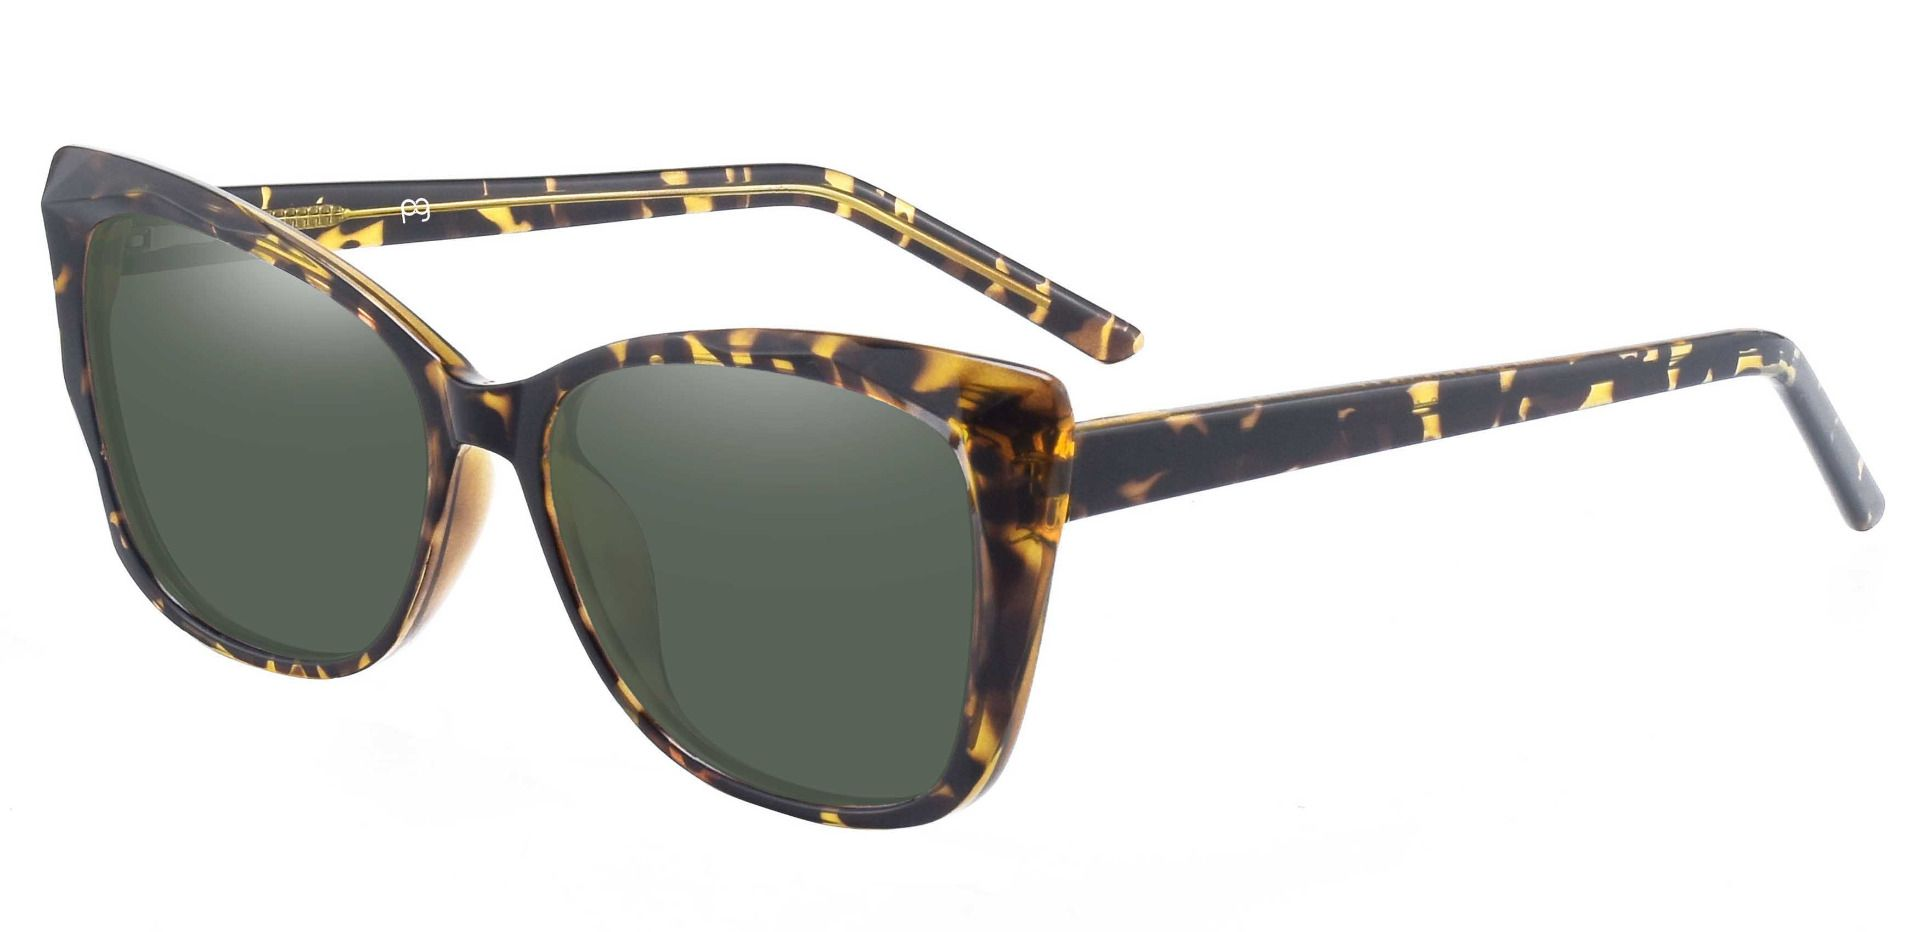 Mabel Square Lined Bifocal Sunglasses - Tortoise Frame With Green Lenses